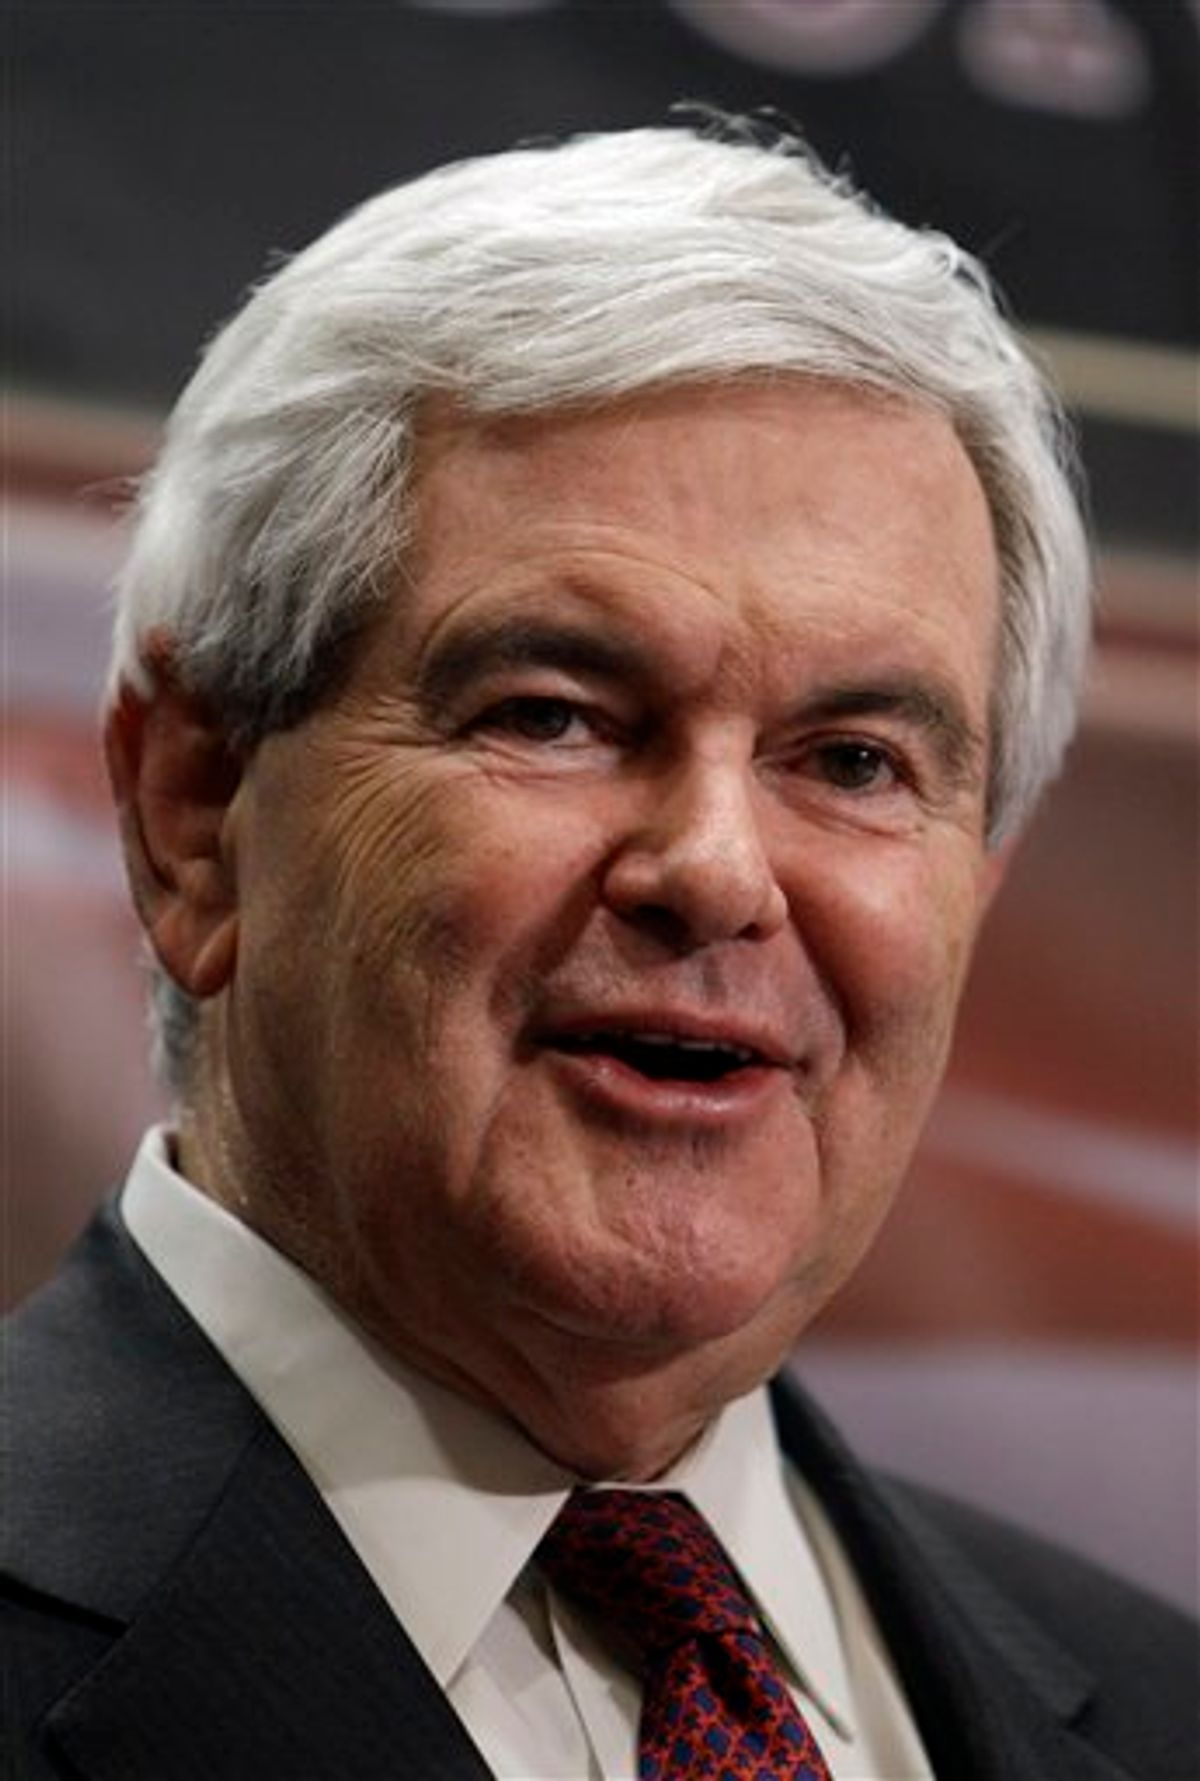 Former House Speaker Newt Gingrich speaks during the Conservative Principles Conference Saturday, March 26, 2011, in Des Moines, Iowa. (AP Photo/Charlie Neibergall) (AP)